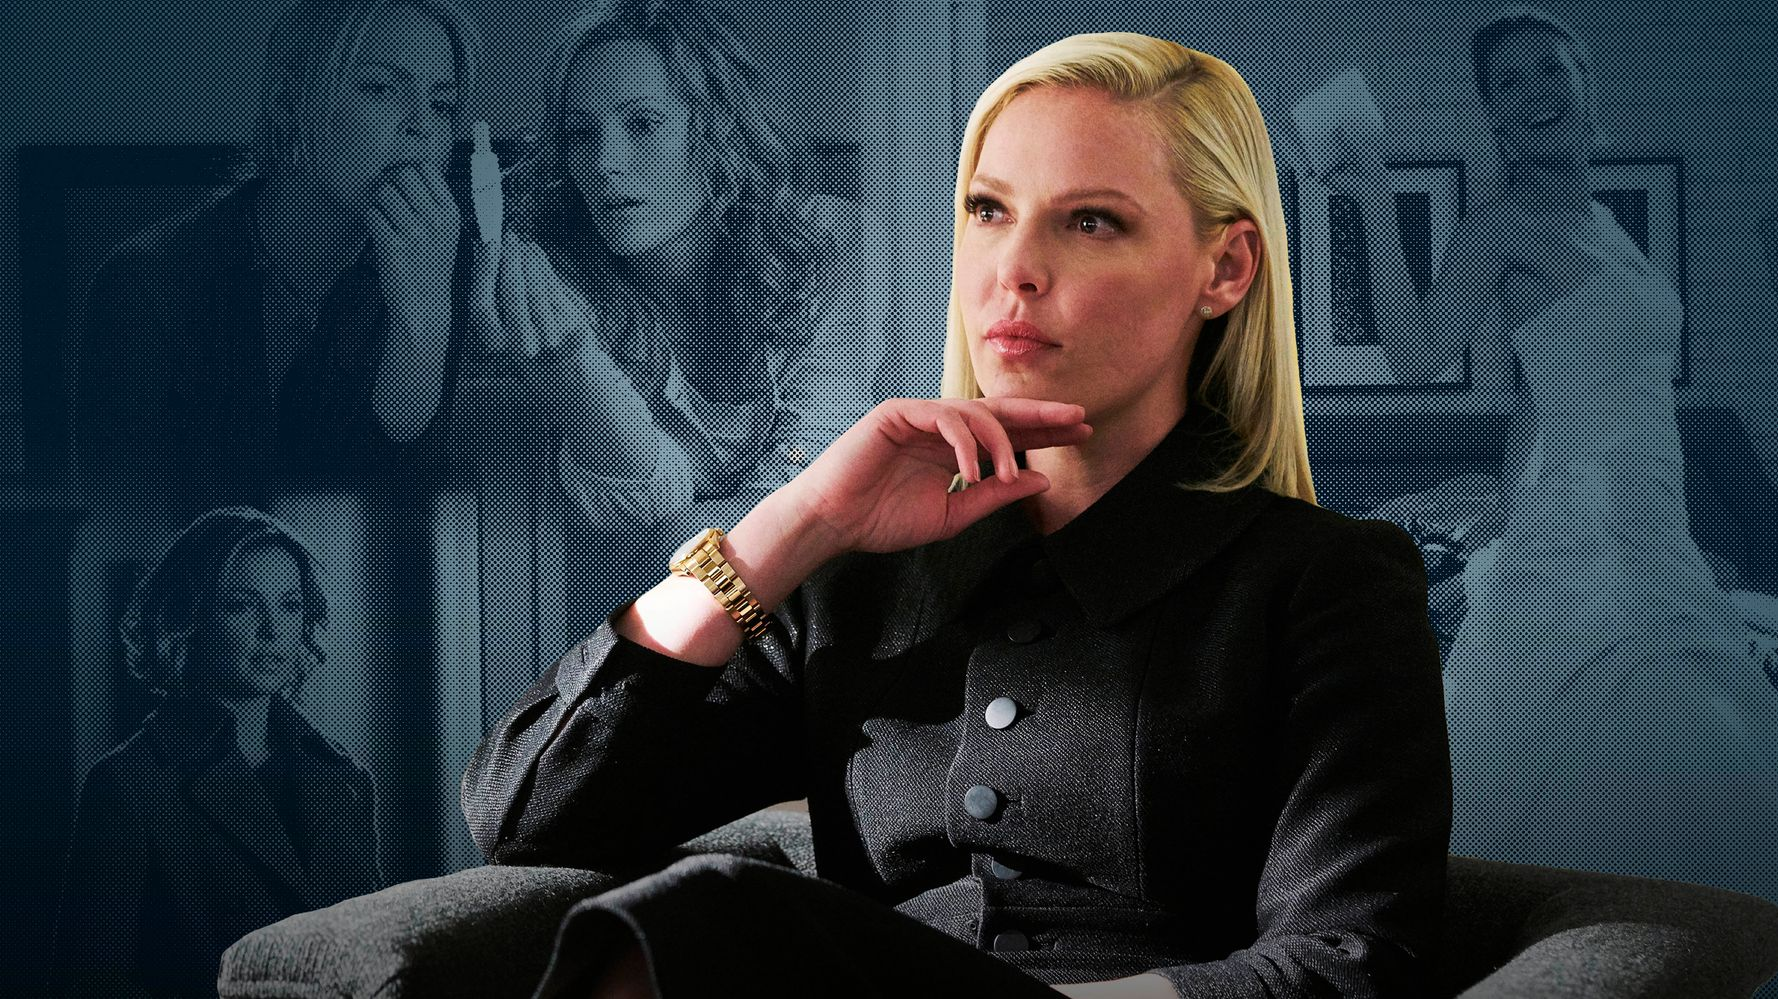 It's Time To Welcome Katherine Heigl's Comeback | HuffPost